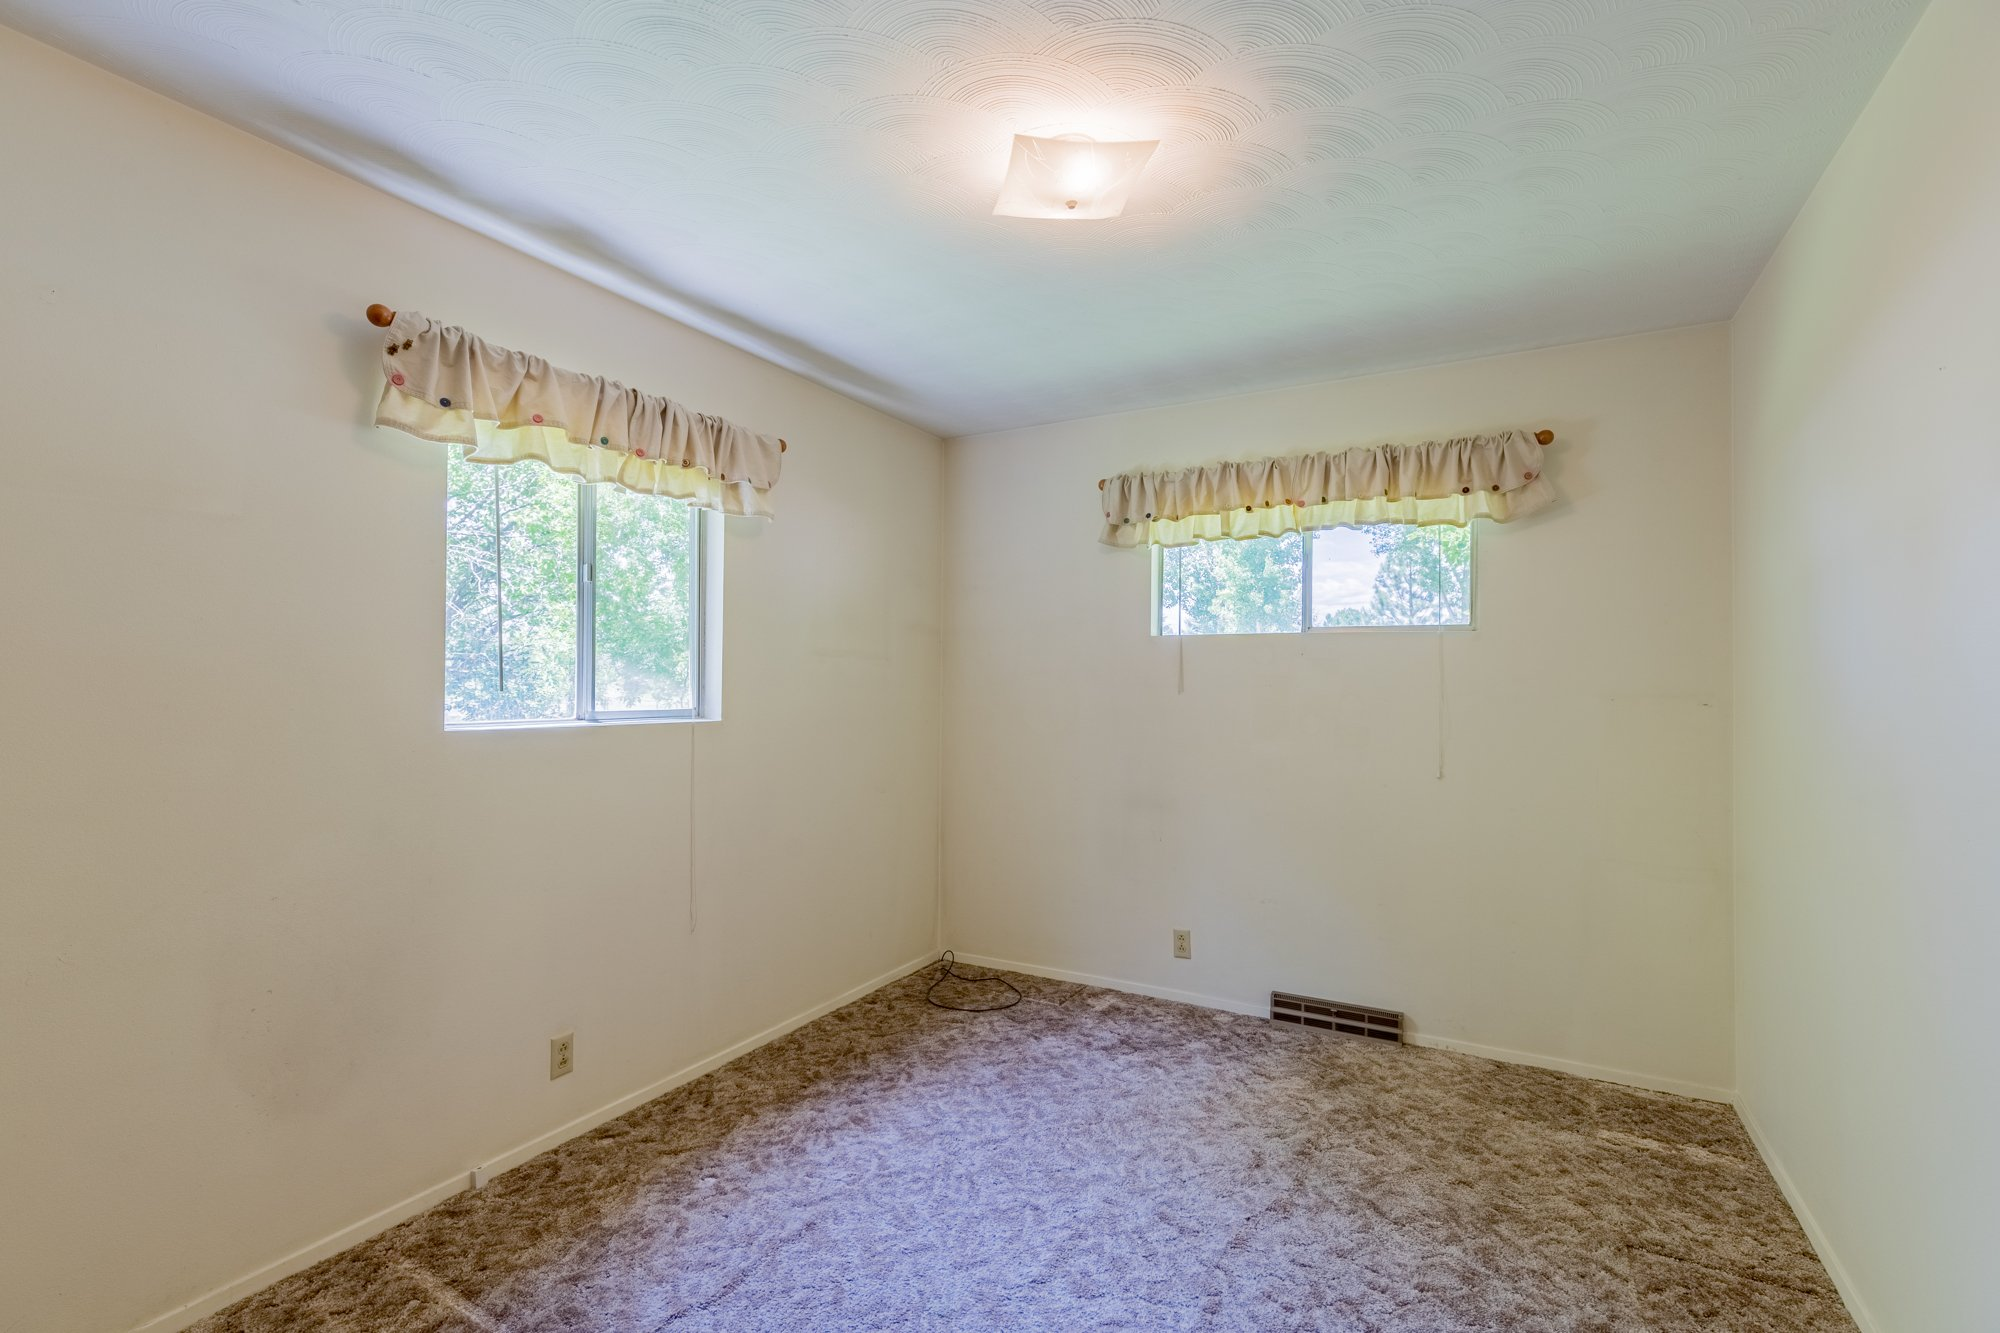 Large bedroom with 2 Windows - 418 6400 Rd Montrose, CO 81403 - Atha Team Realty